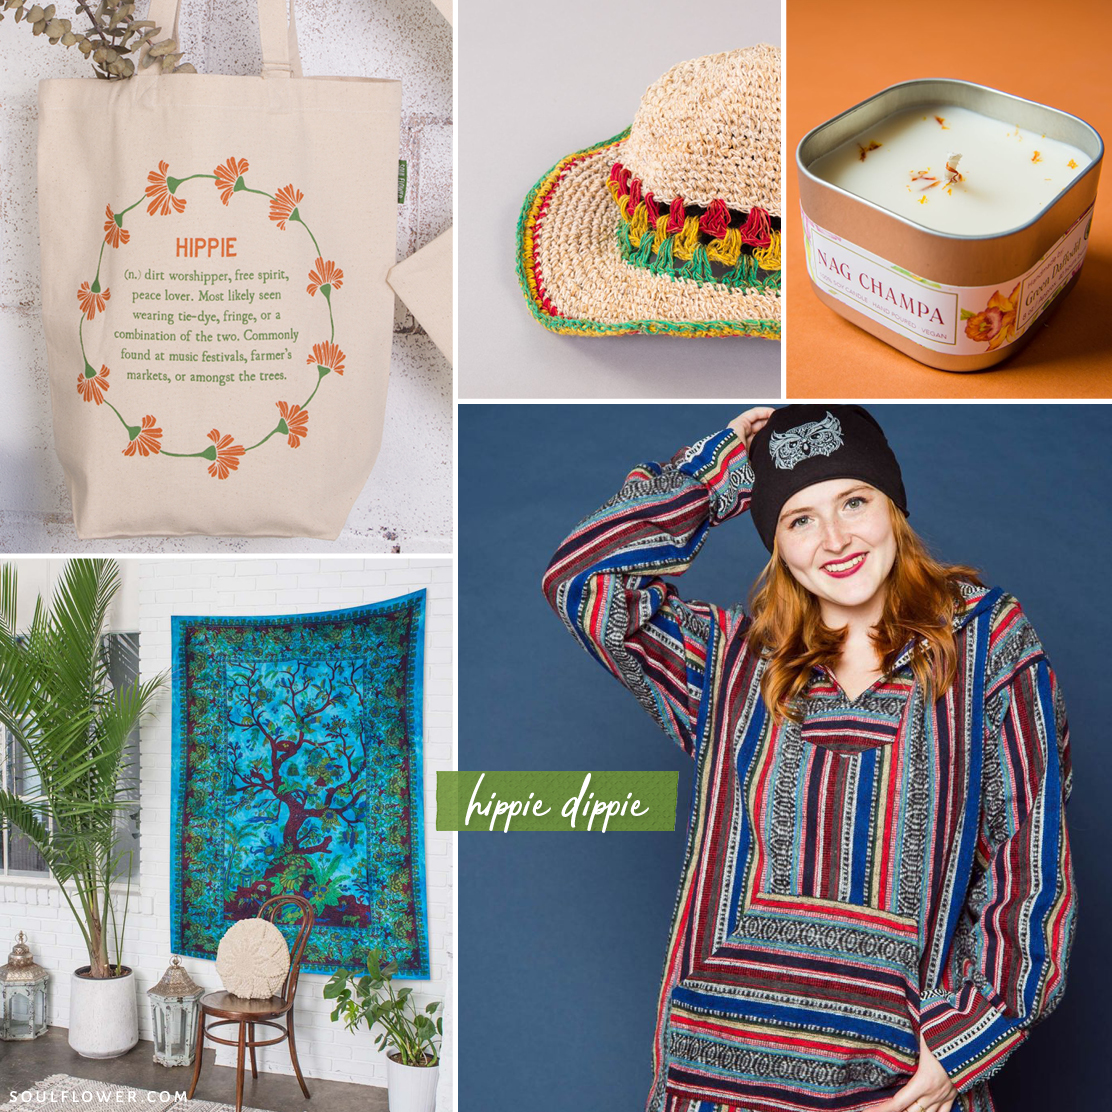 vegan gifts hippie dippies - Vegan Gift Ideas - Vegan Holiday Gifts